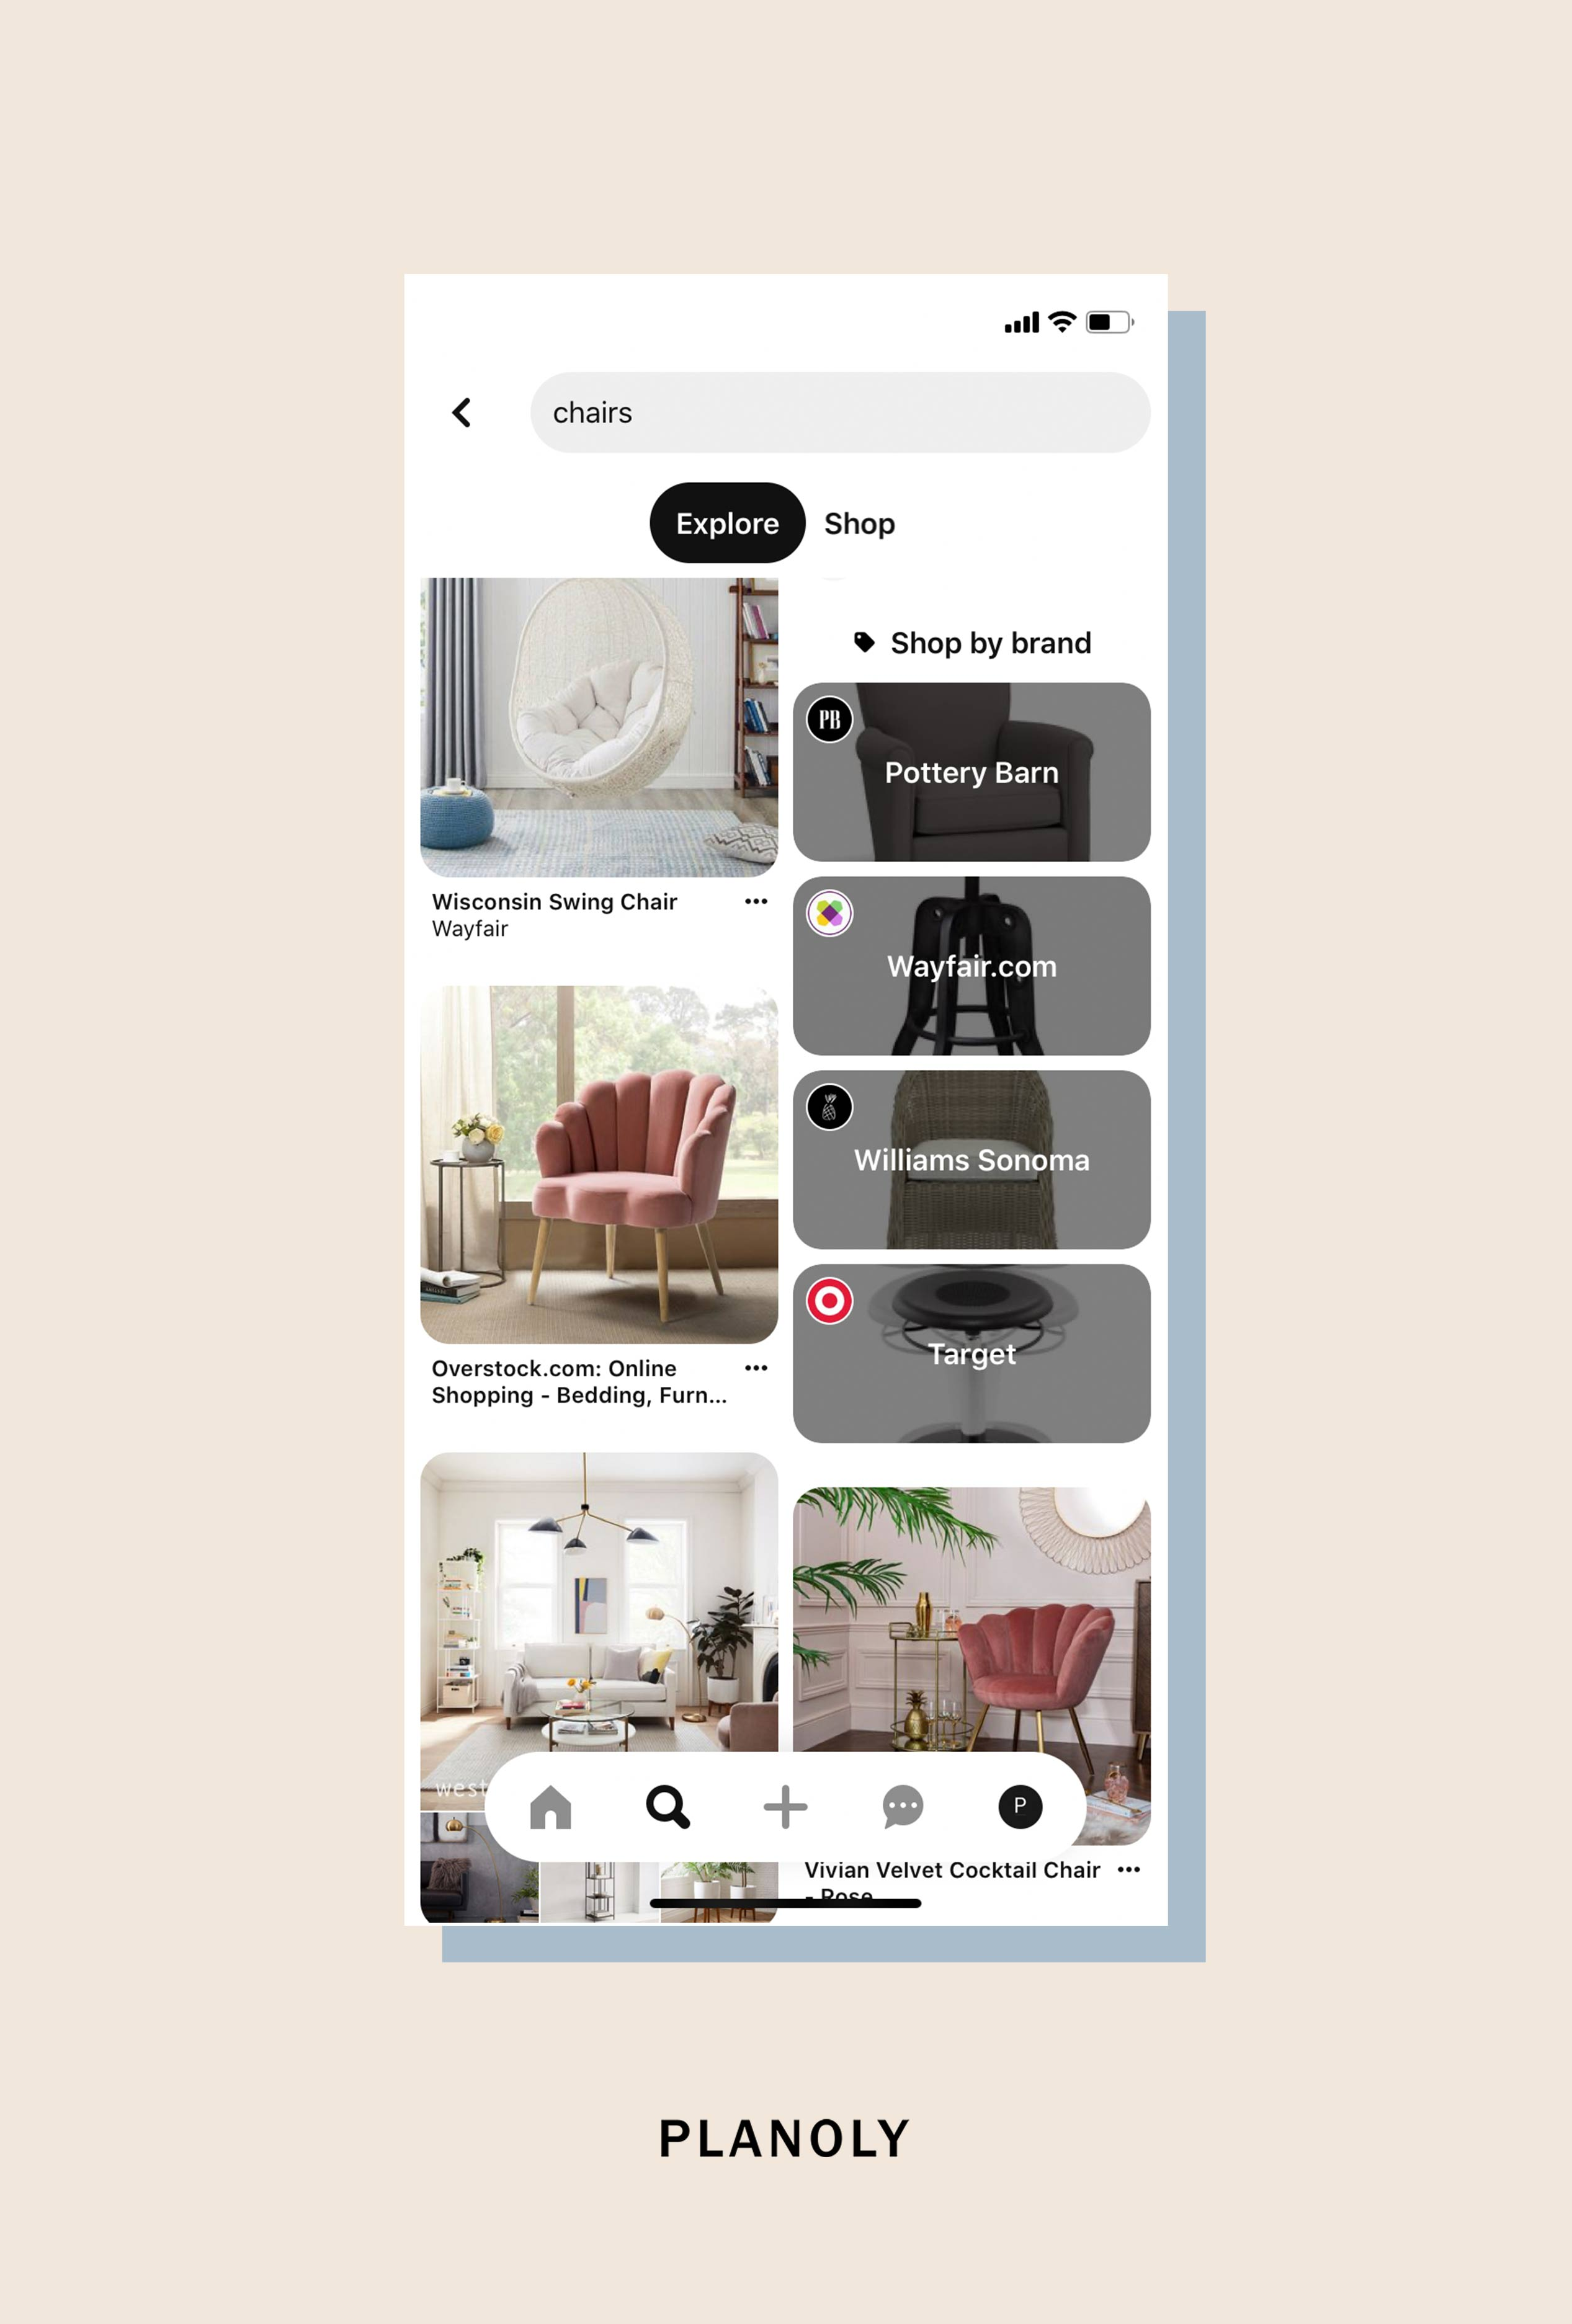 PLANOLY-Blog-Post-How-Retailers-Can-Use-Pinterest-Shops-Feature-Image-3